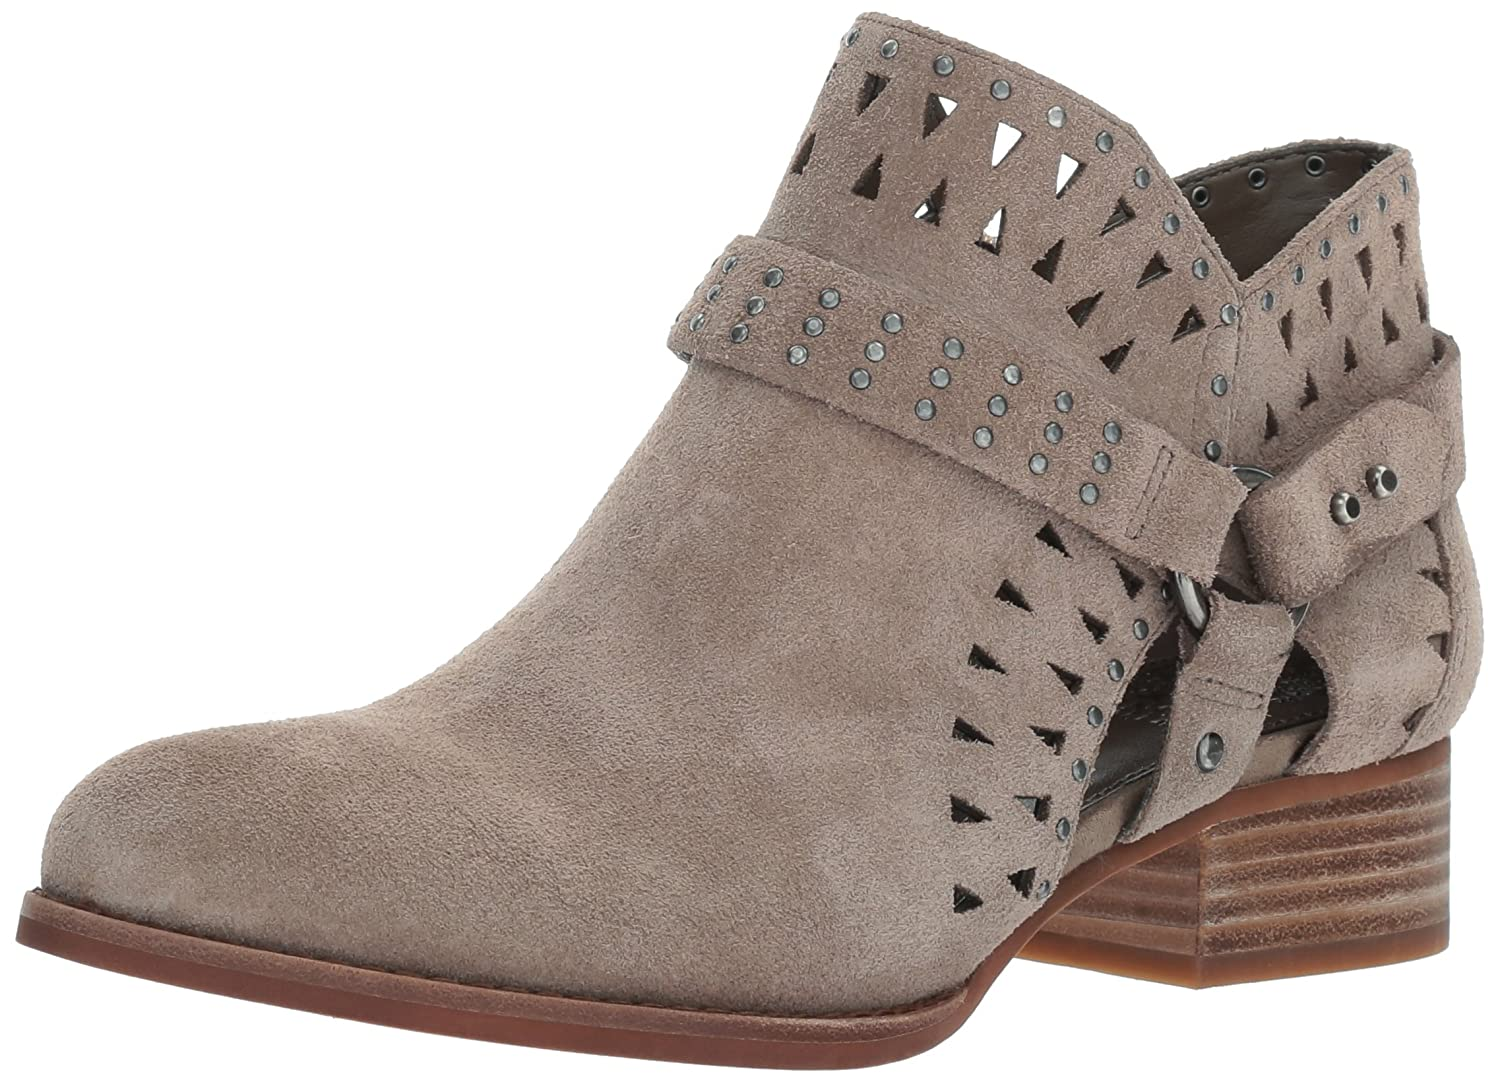 Vince Camuto Women's Calley Ankle Boot B01MR5H5O9 9.5 B(M) US|Foxy